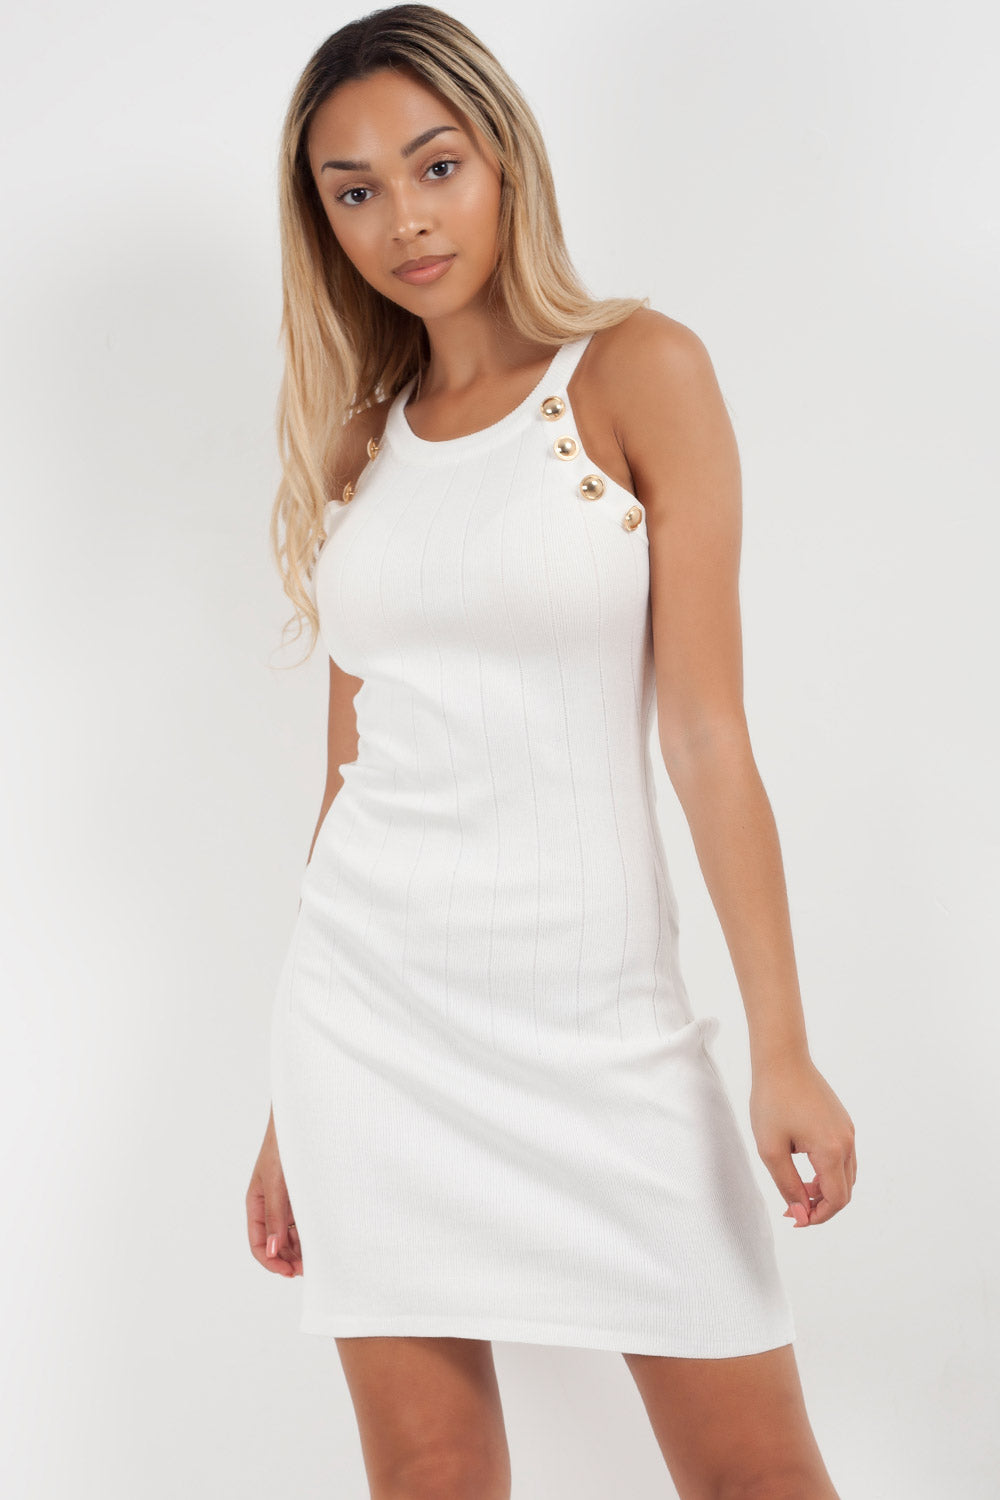 white bodycon midi dress